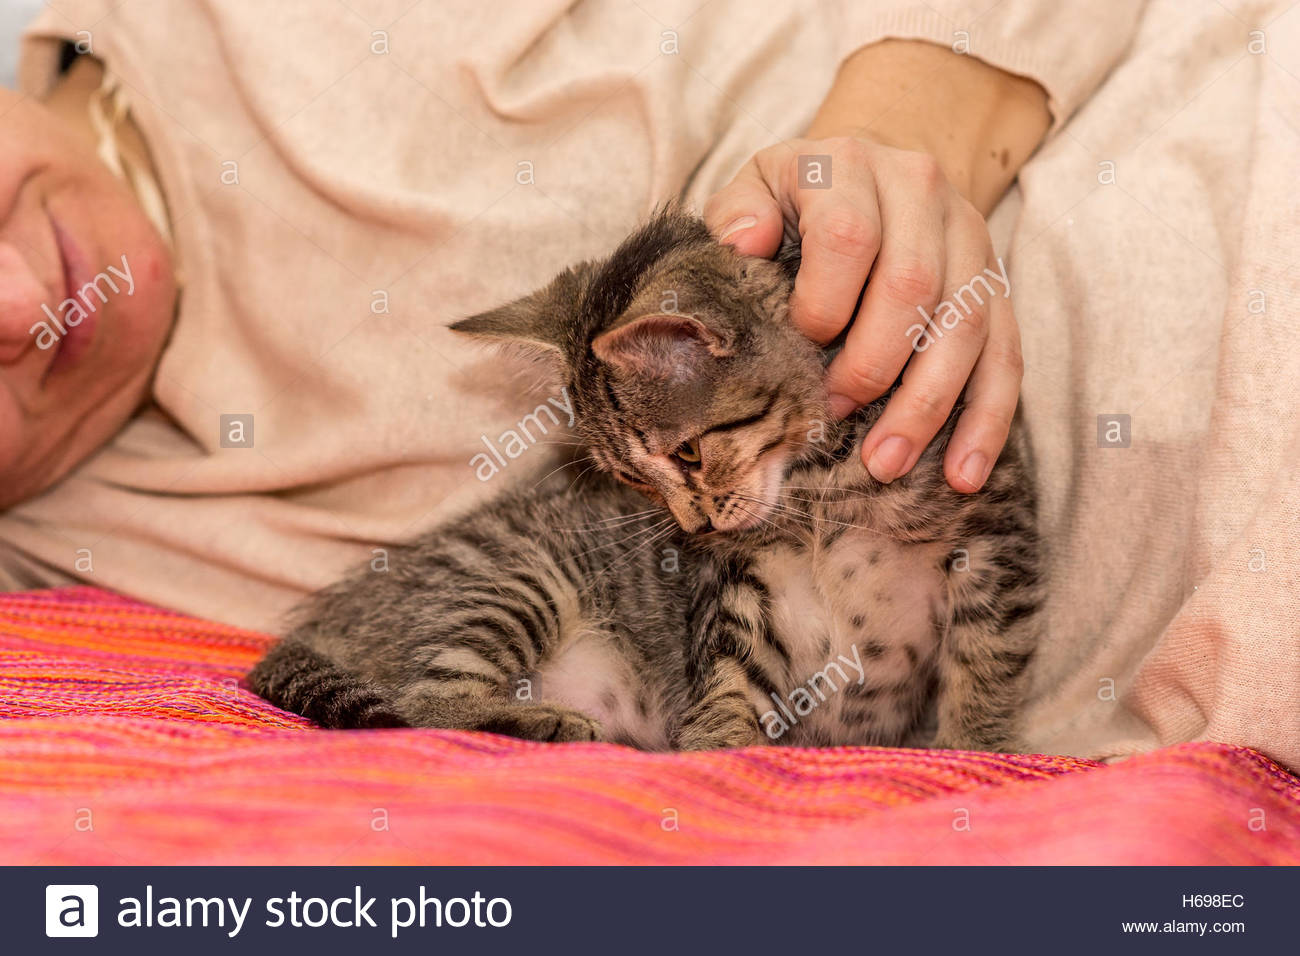 Highly relaxed female common gray cat receiving caresses lying next to a woman on the bed. - Stock Image